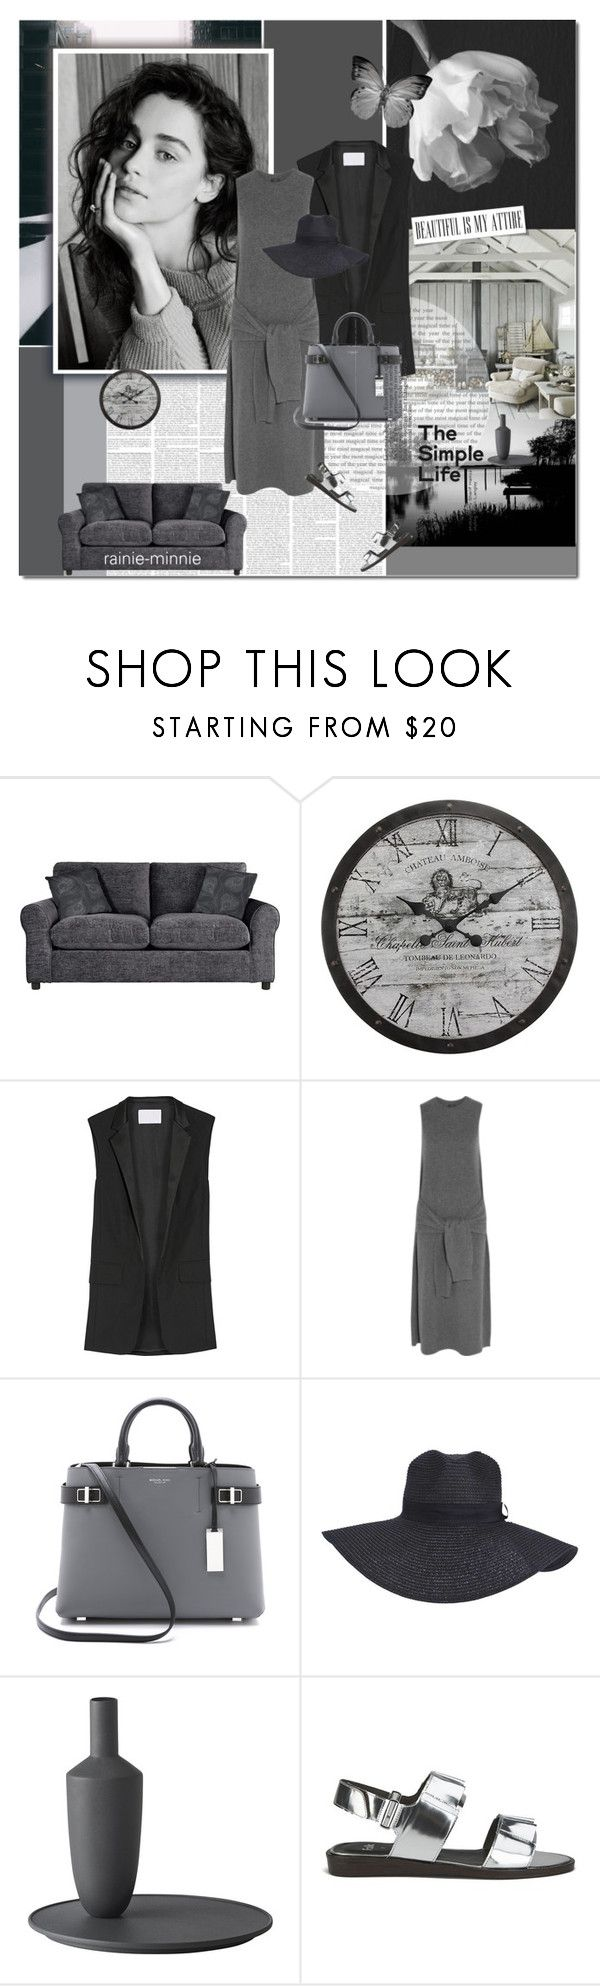 """Emilia Clark"" by rainie-minnie ❤ liked on Polyvore featuring Stonebriar Collection, Alexander Wang, Joseph, Michael Kors, Boohoo, Muuto and Folk"